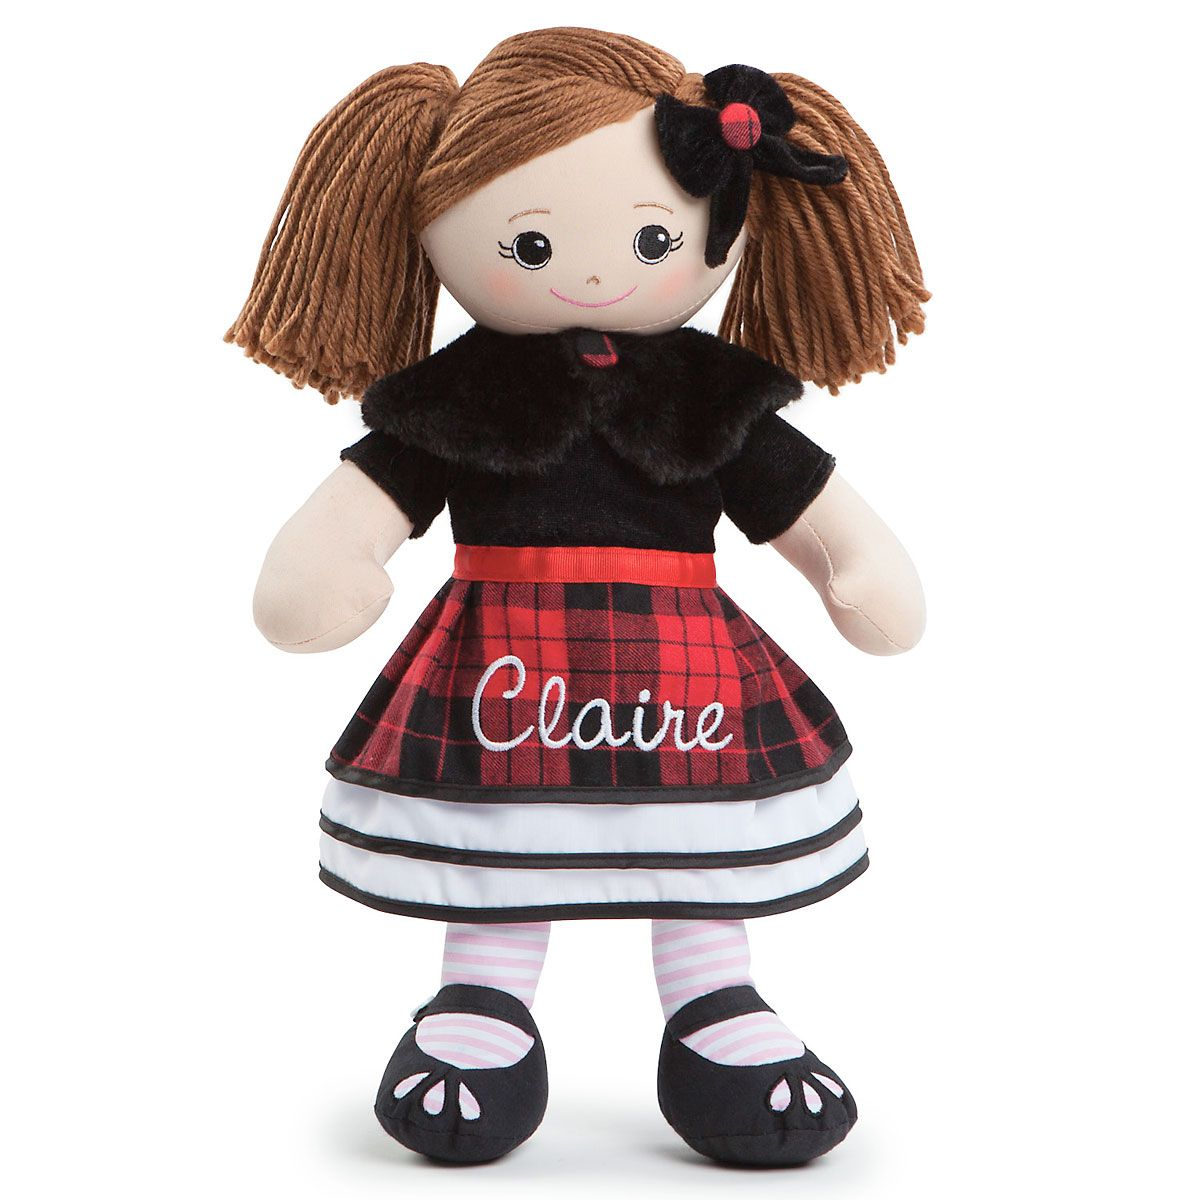 Personalized Brunette Rag Doll in Plaid Dress